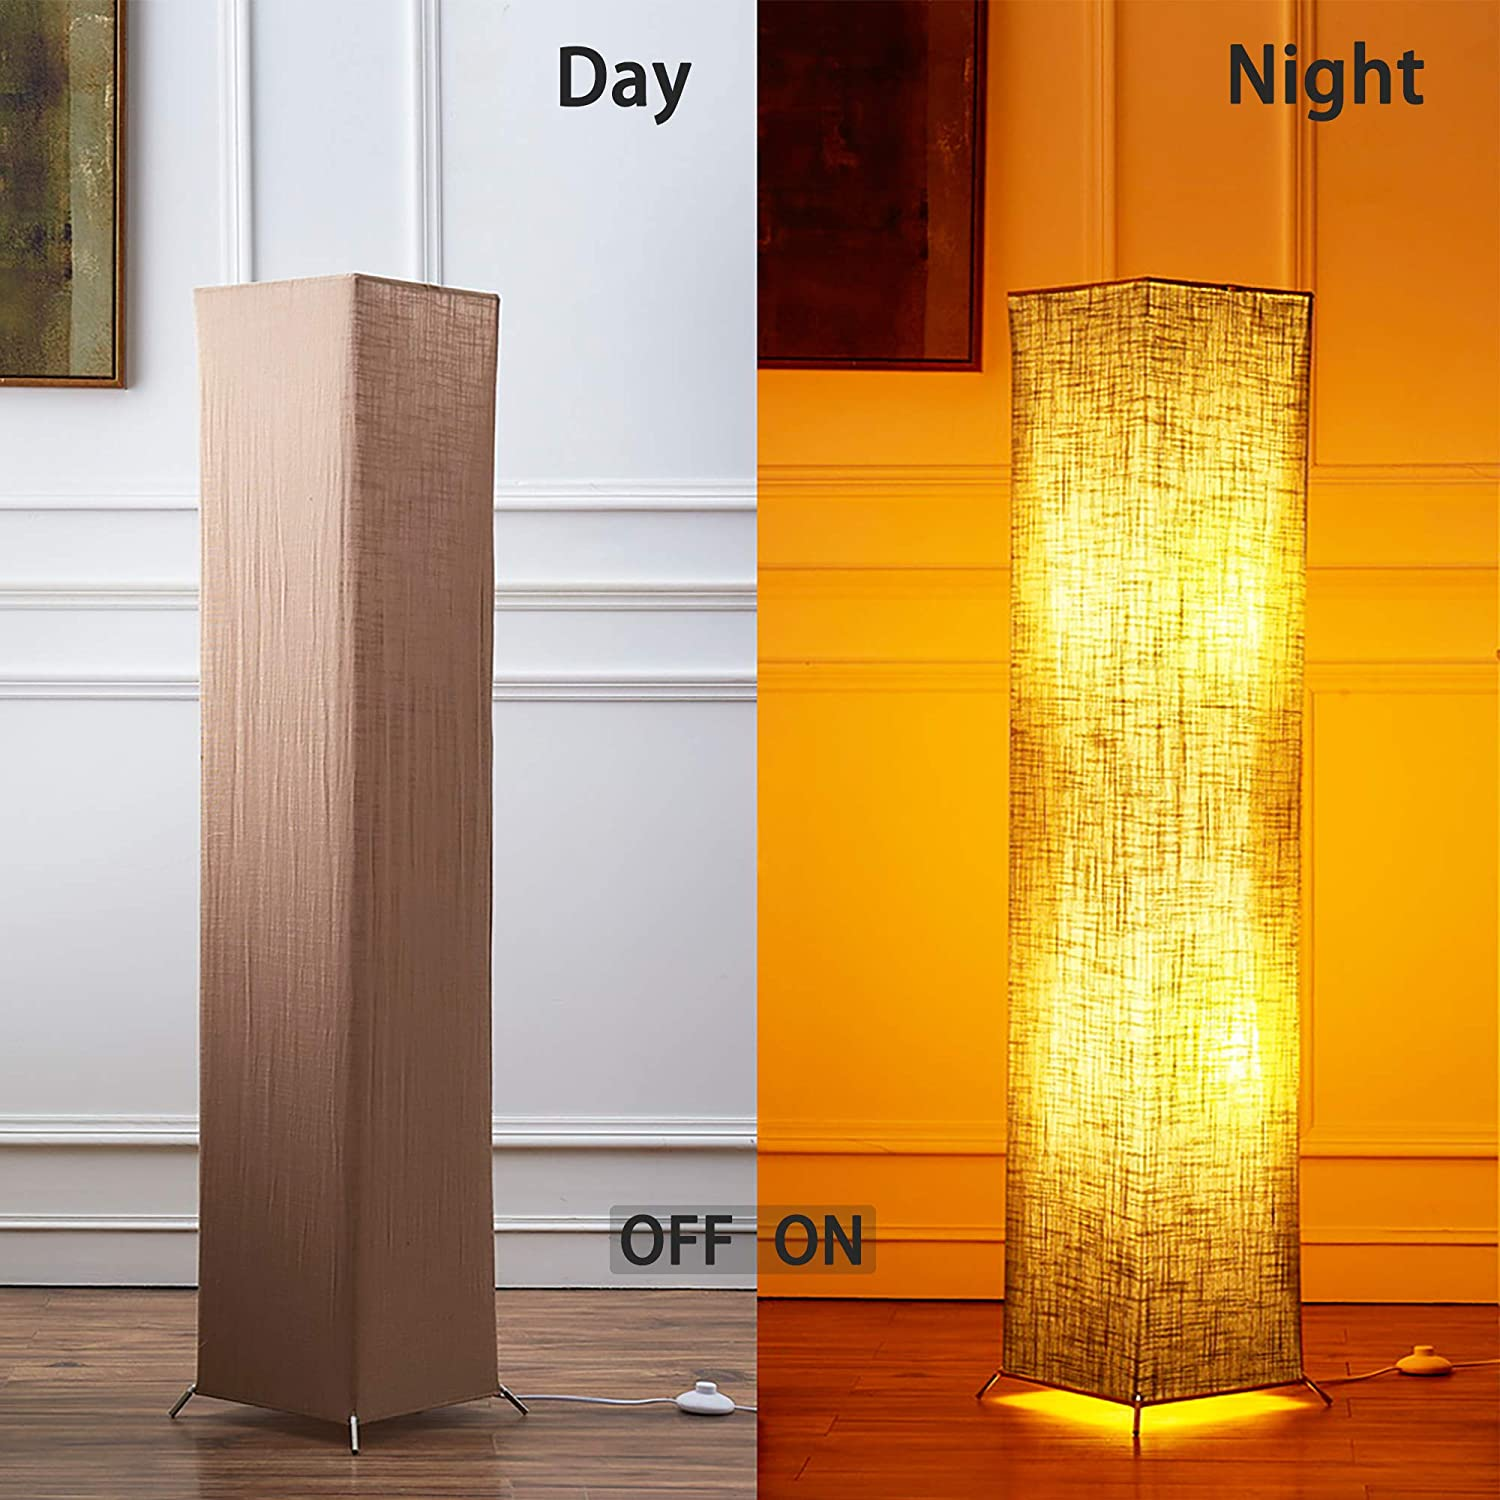 Bedroom and Office Floor Lamp CHIPHY Modern Standing Lamp Color Changing and Dimmable Smart RGB Bulbs Black Linen Shade and Romote Control 101061 inches Tall Light for Living Room